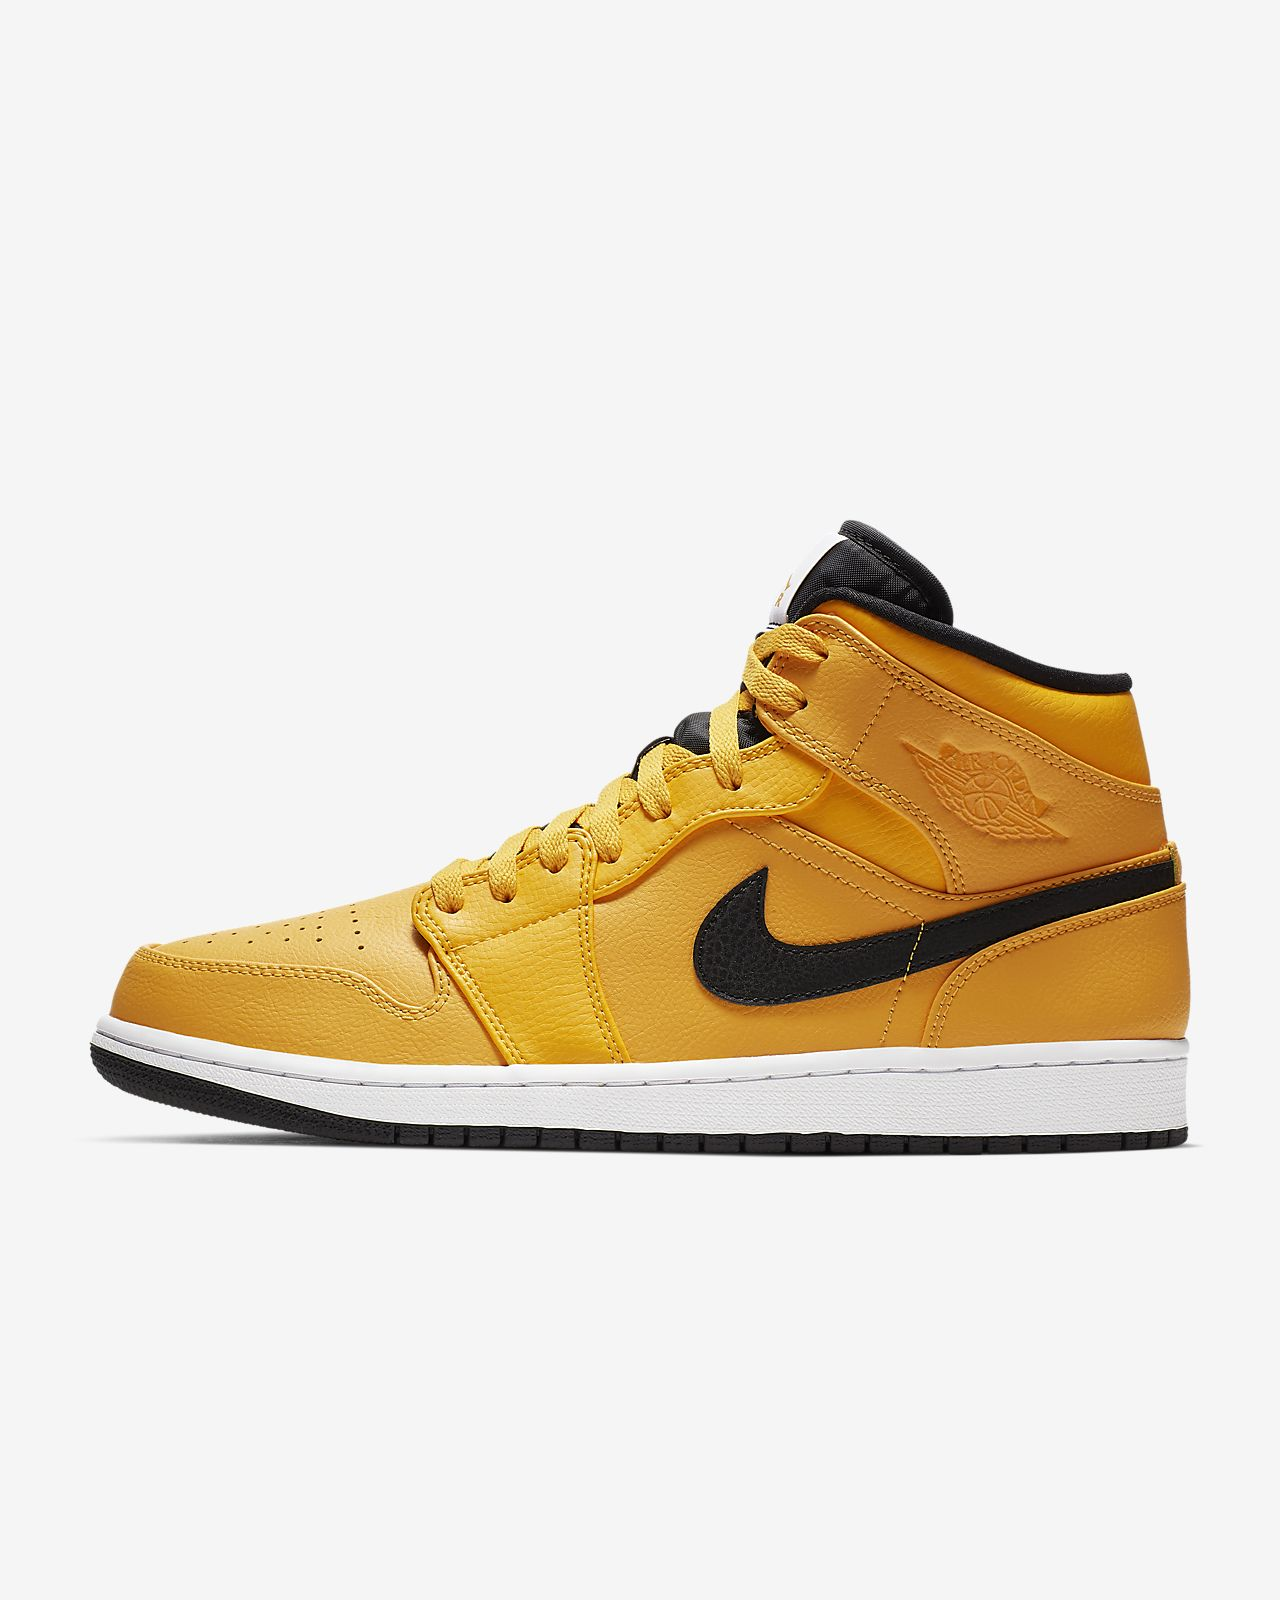 on sale 17cec b4b2a Men s Shoe. Air Jordan 1 Mid